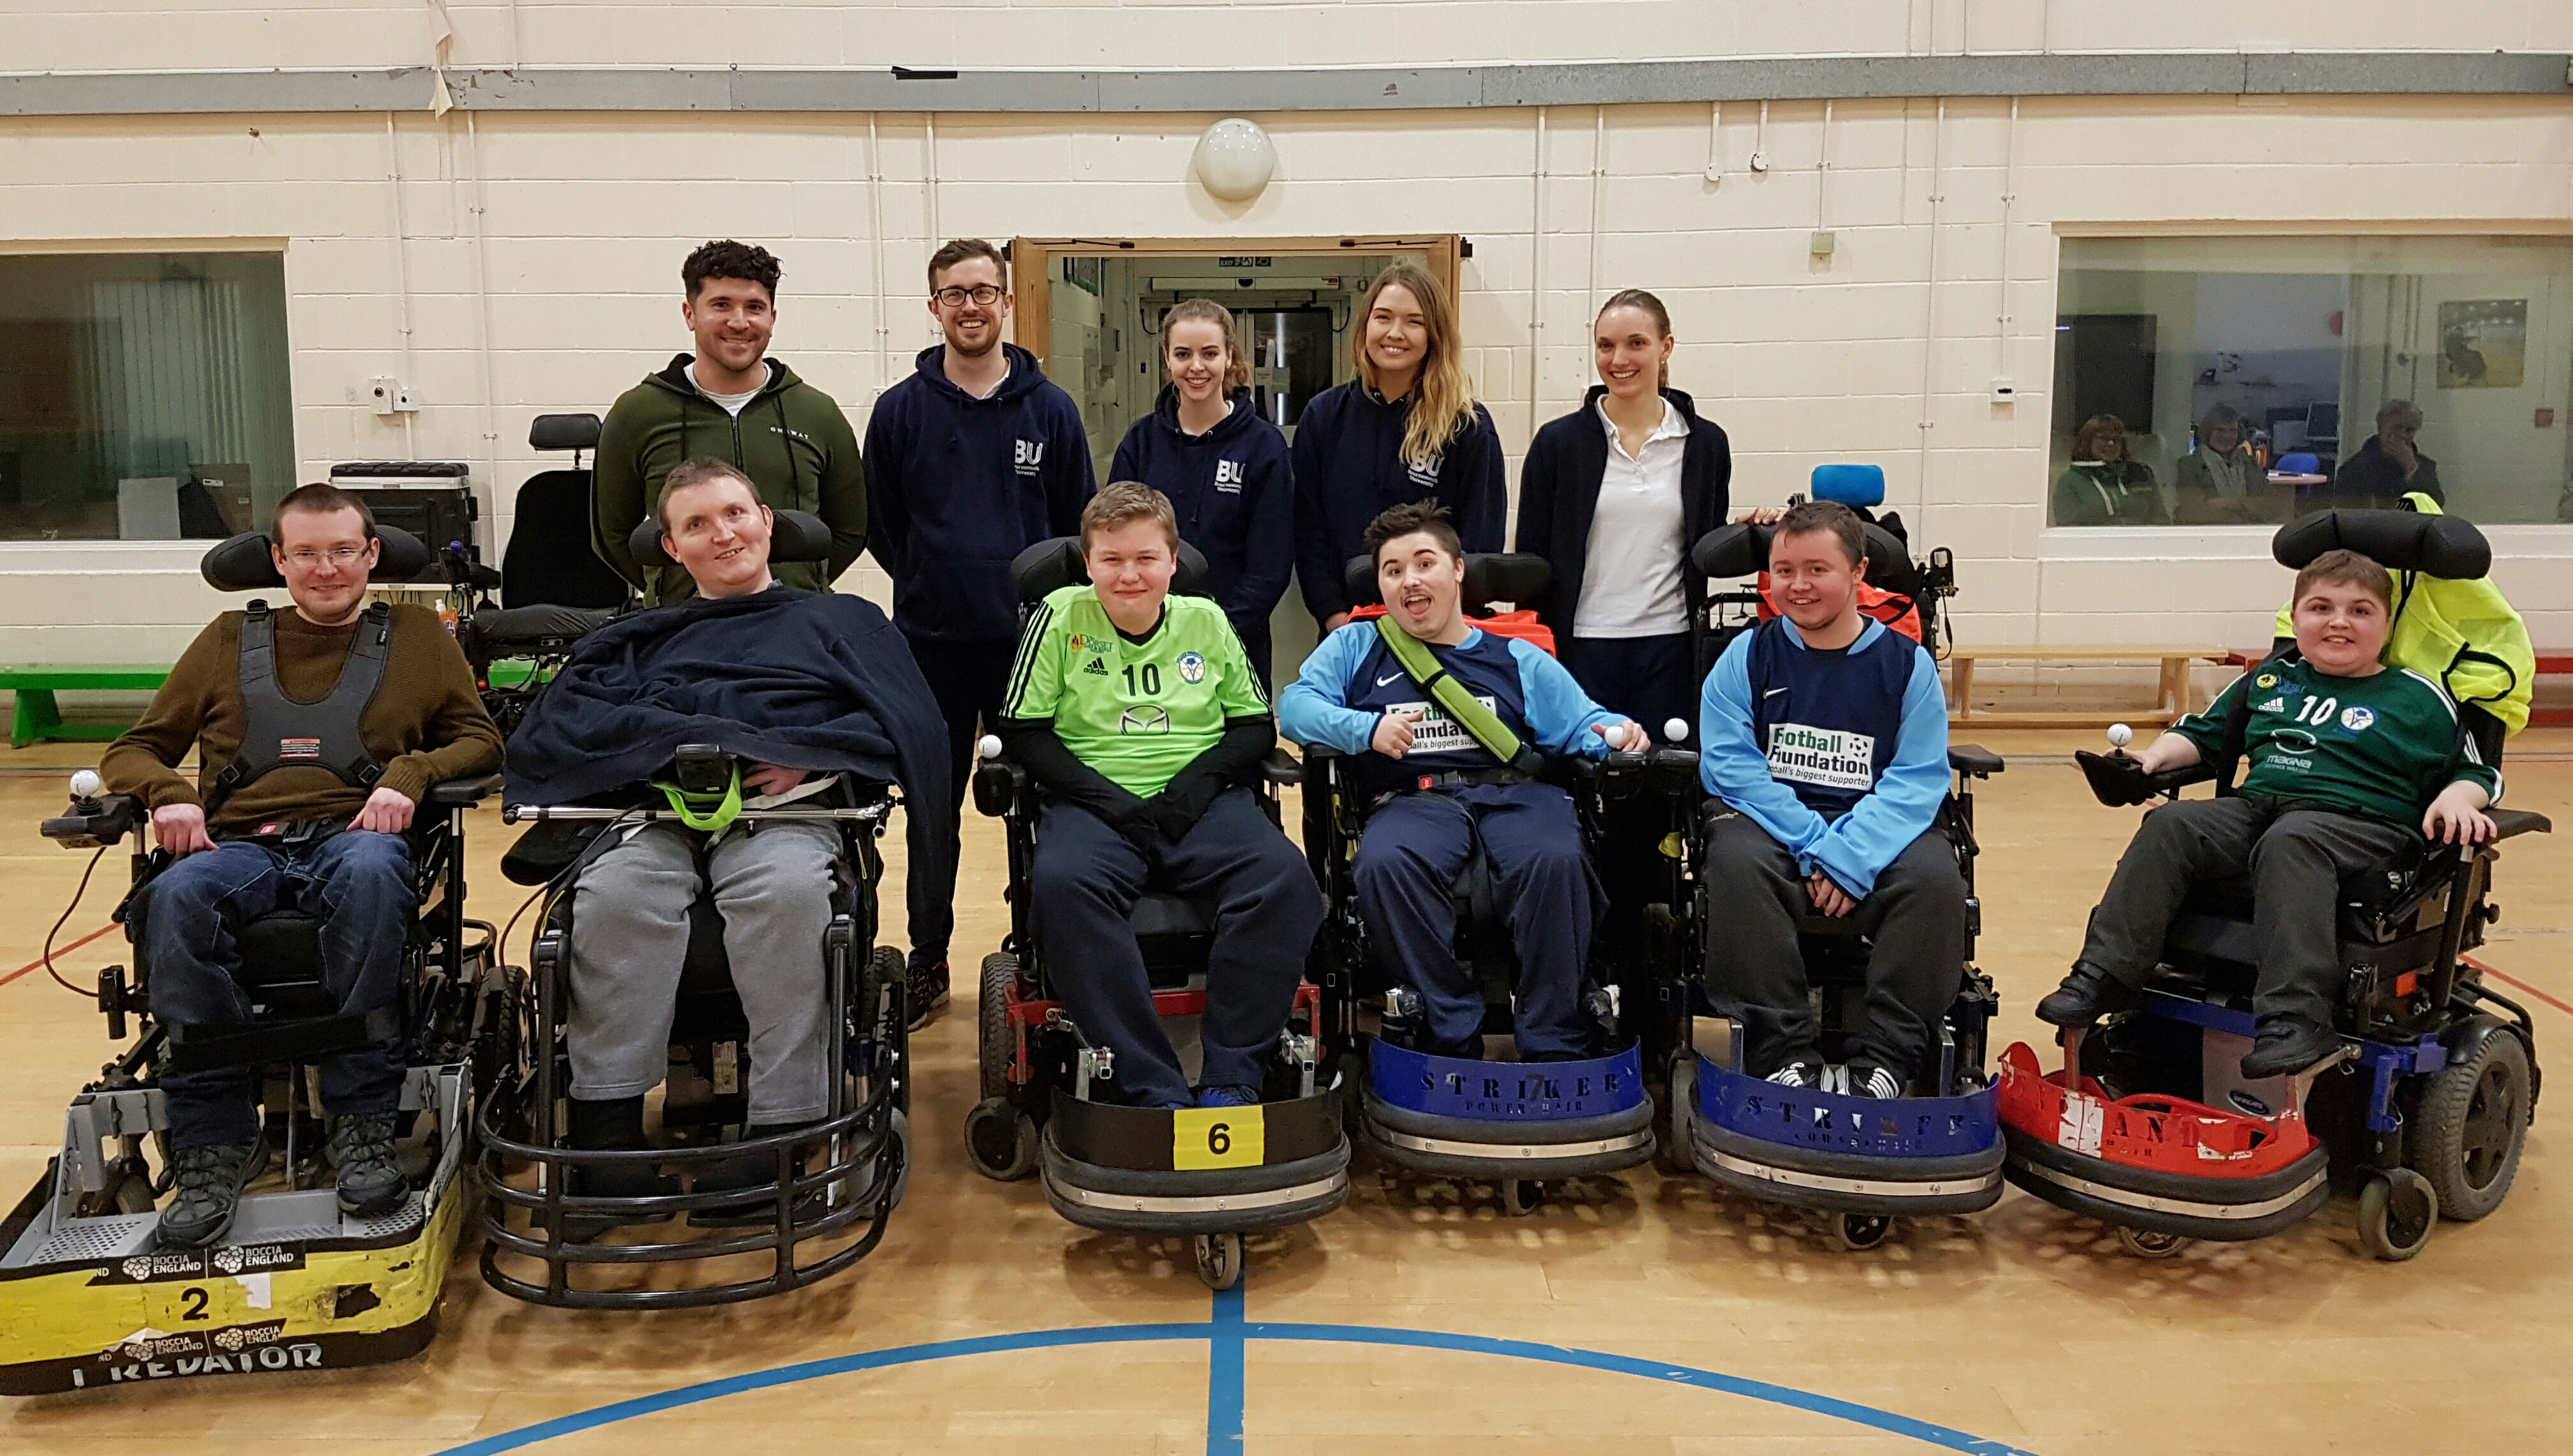 kart england fotball BU Physiotherapy students volunteer with disability sports groups